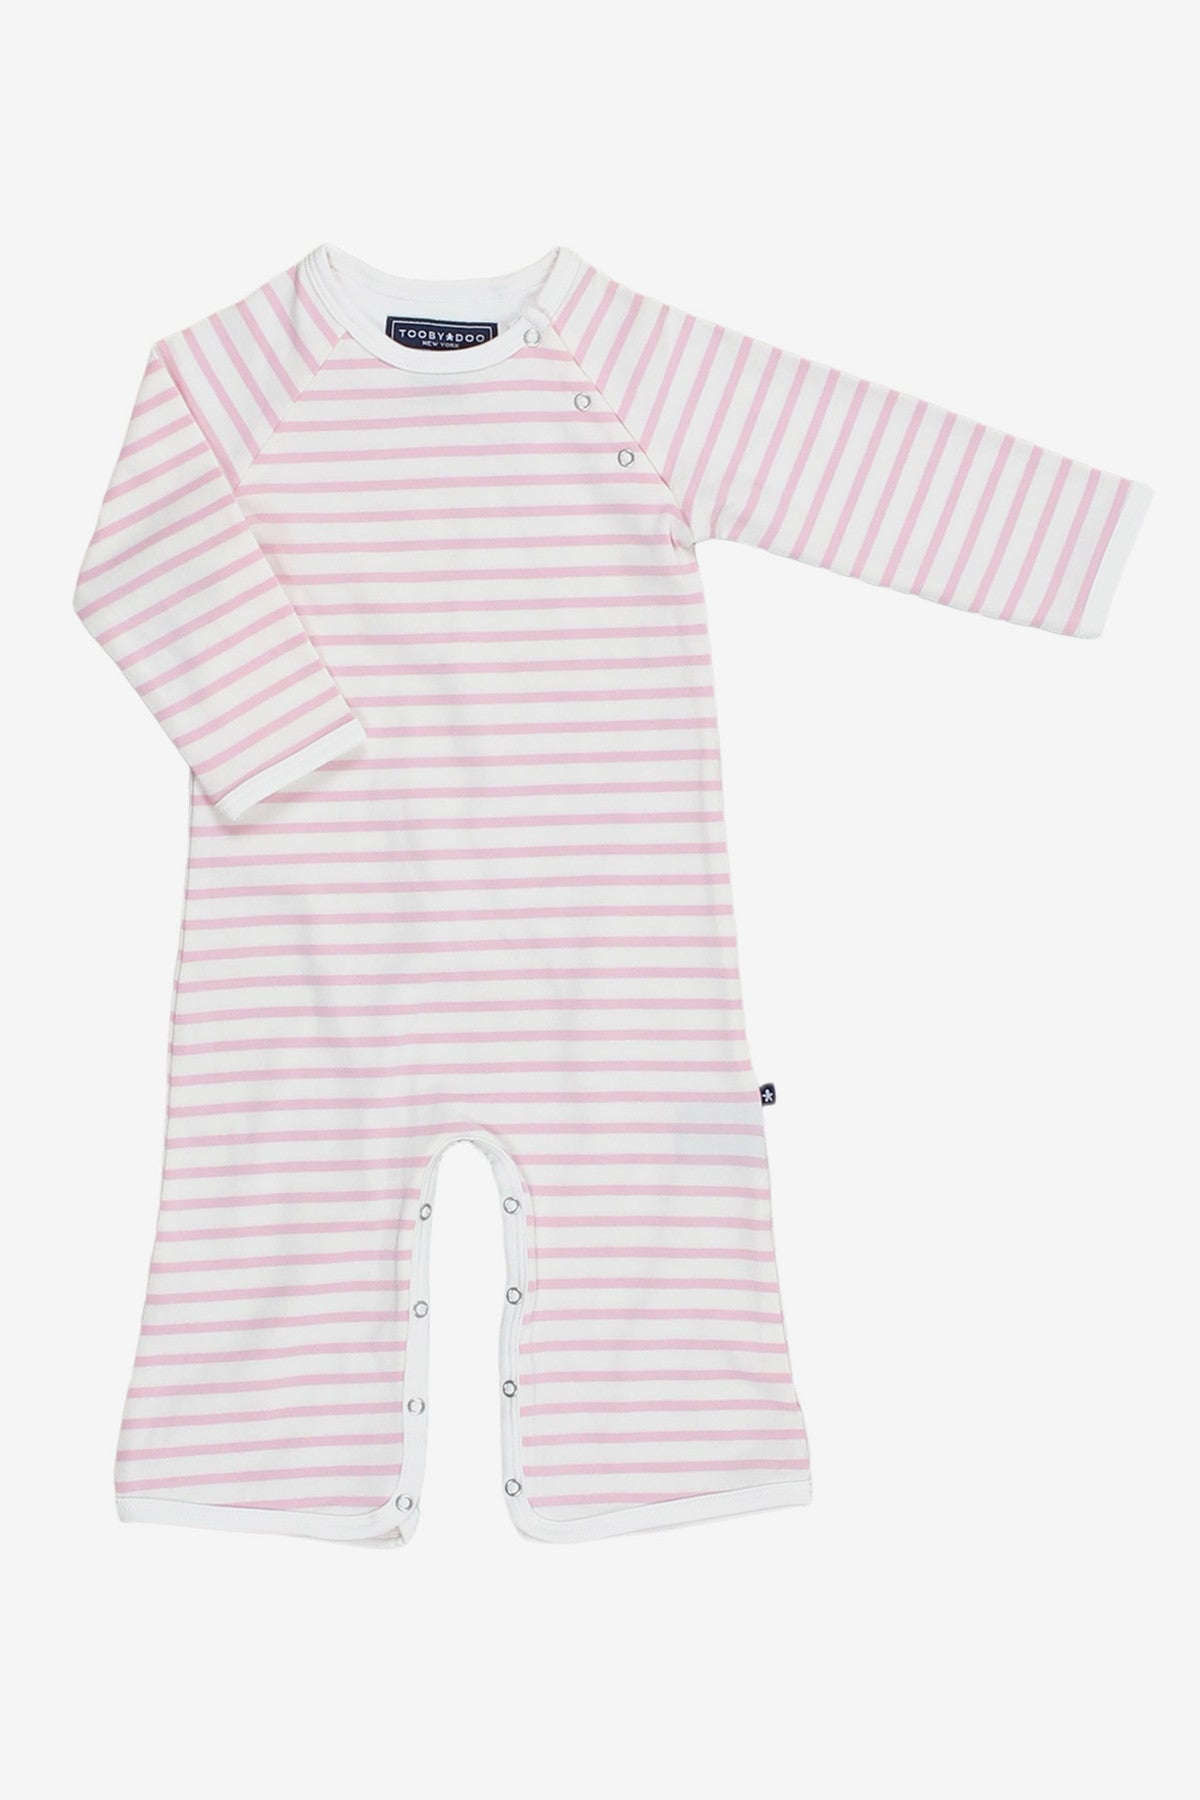 Toobydoo Chelsea Baby Girls Jumpsuit